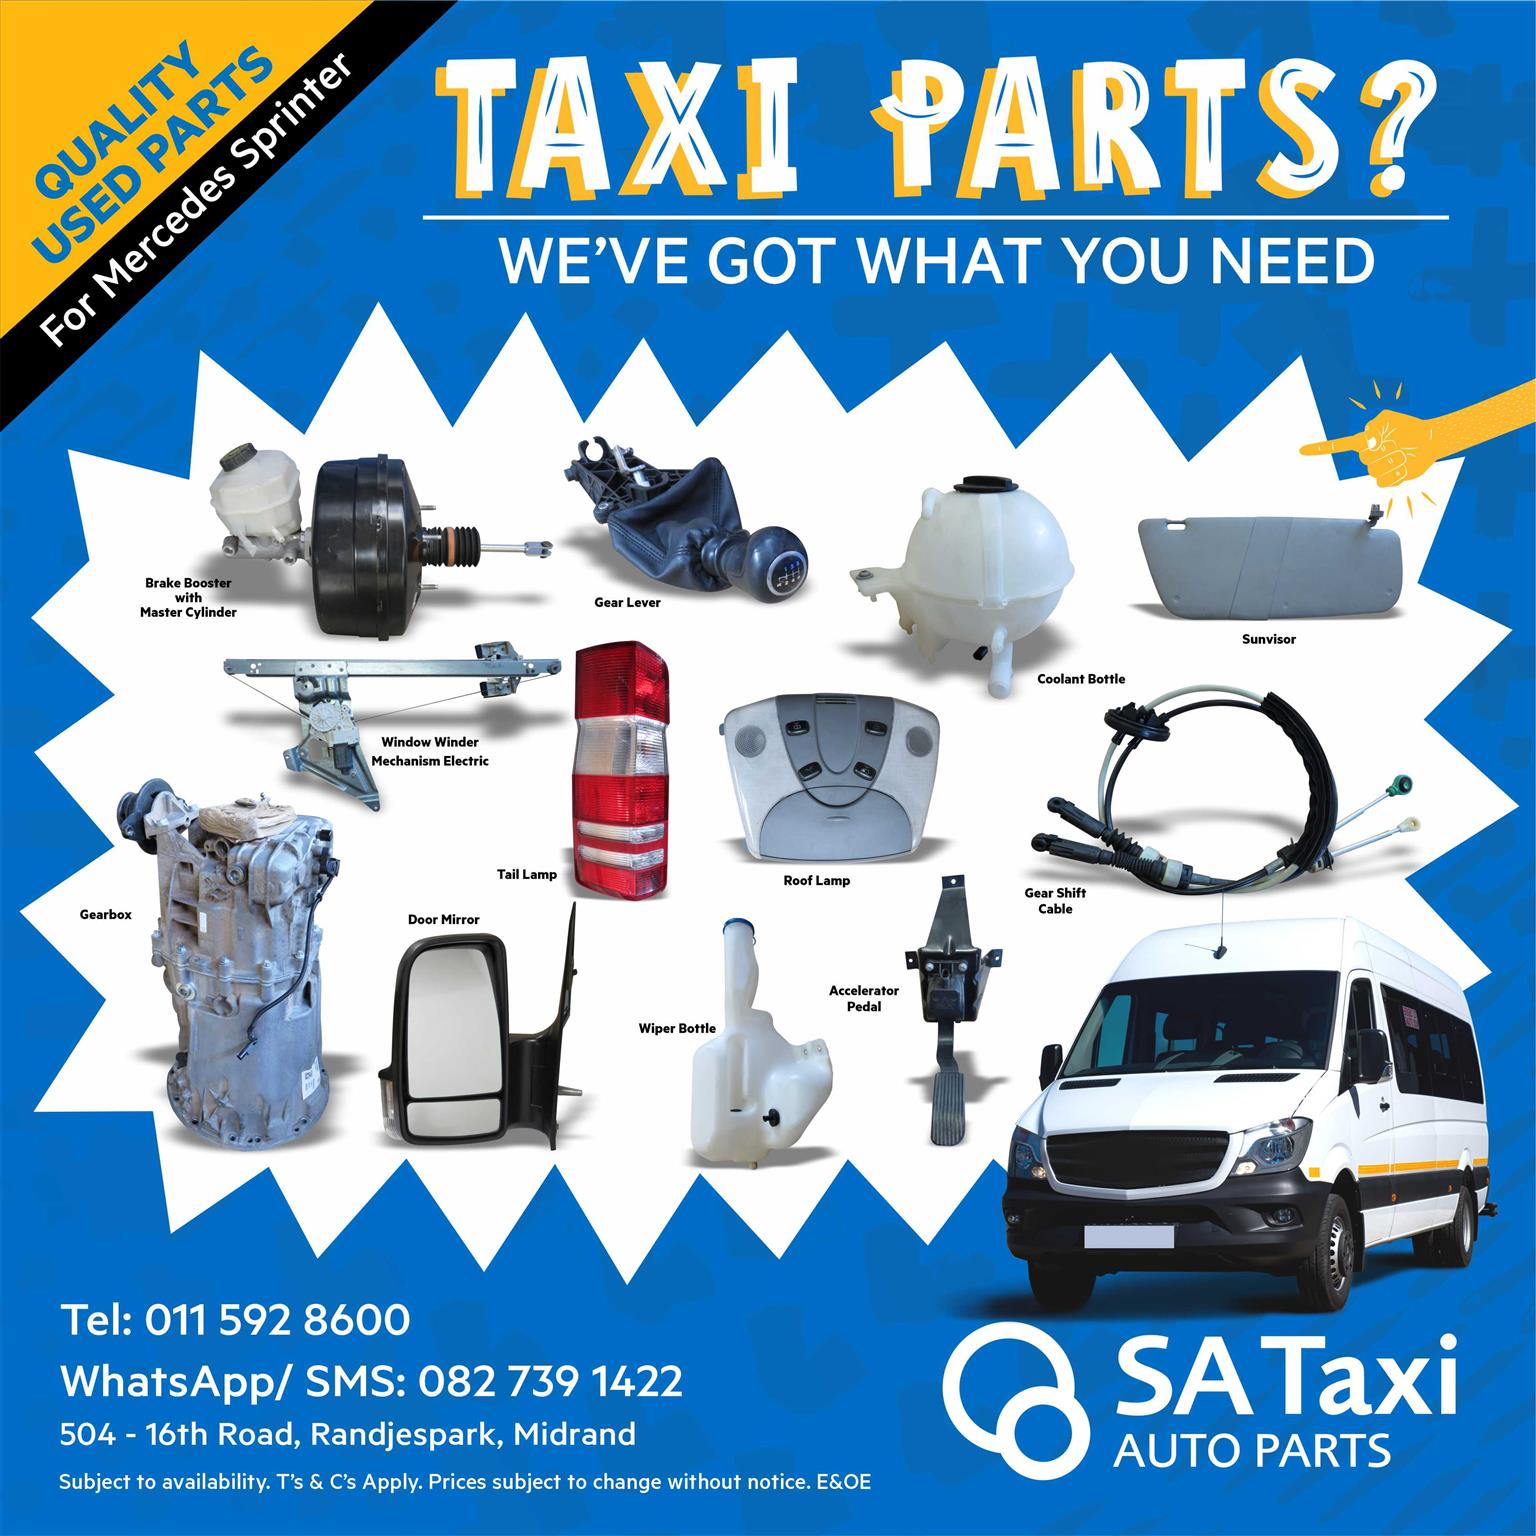 NEW Batteries suitable for Toyota Quantum, Nissan Impendulo - SA Taxi Auto Parts quality spares